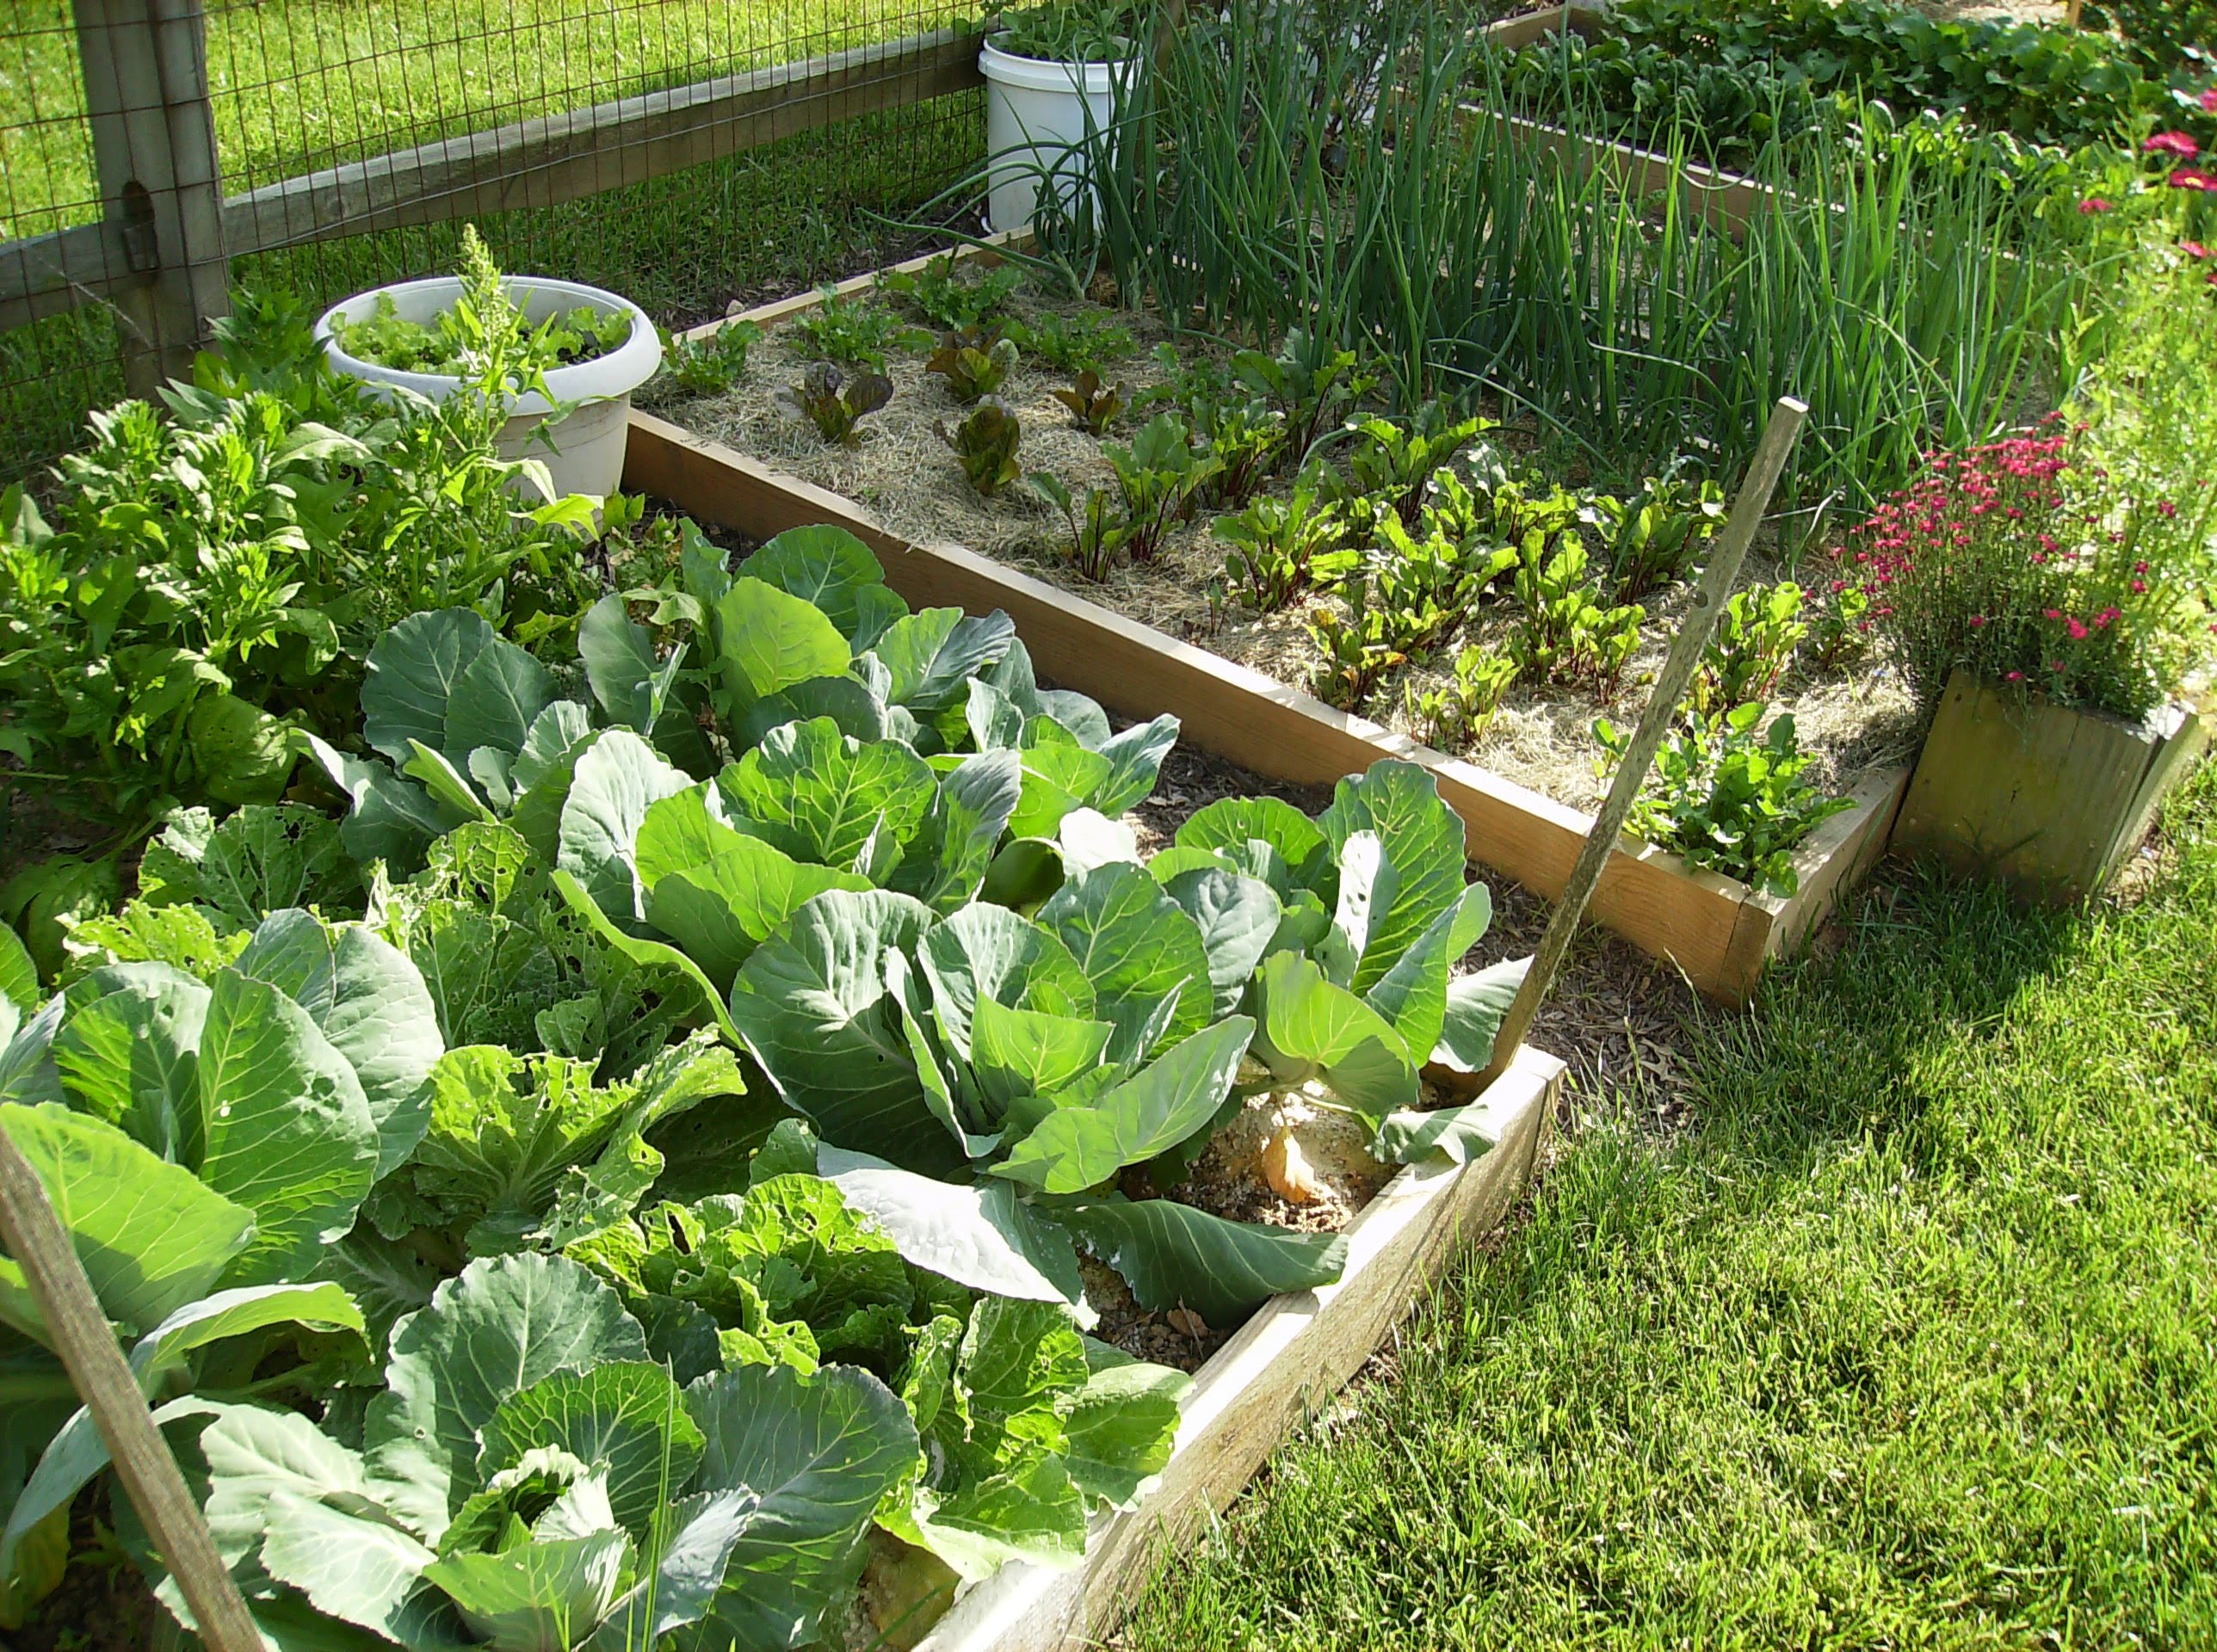 Watering Vegetable Gardening In A Raised Bed (View 4 of 10)